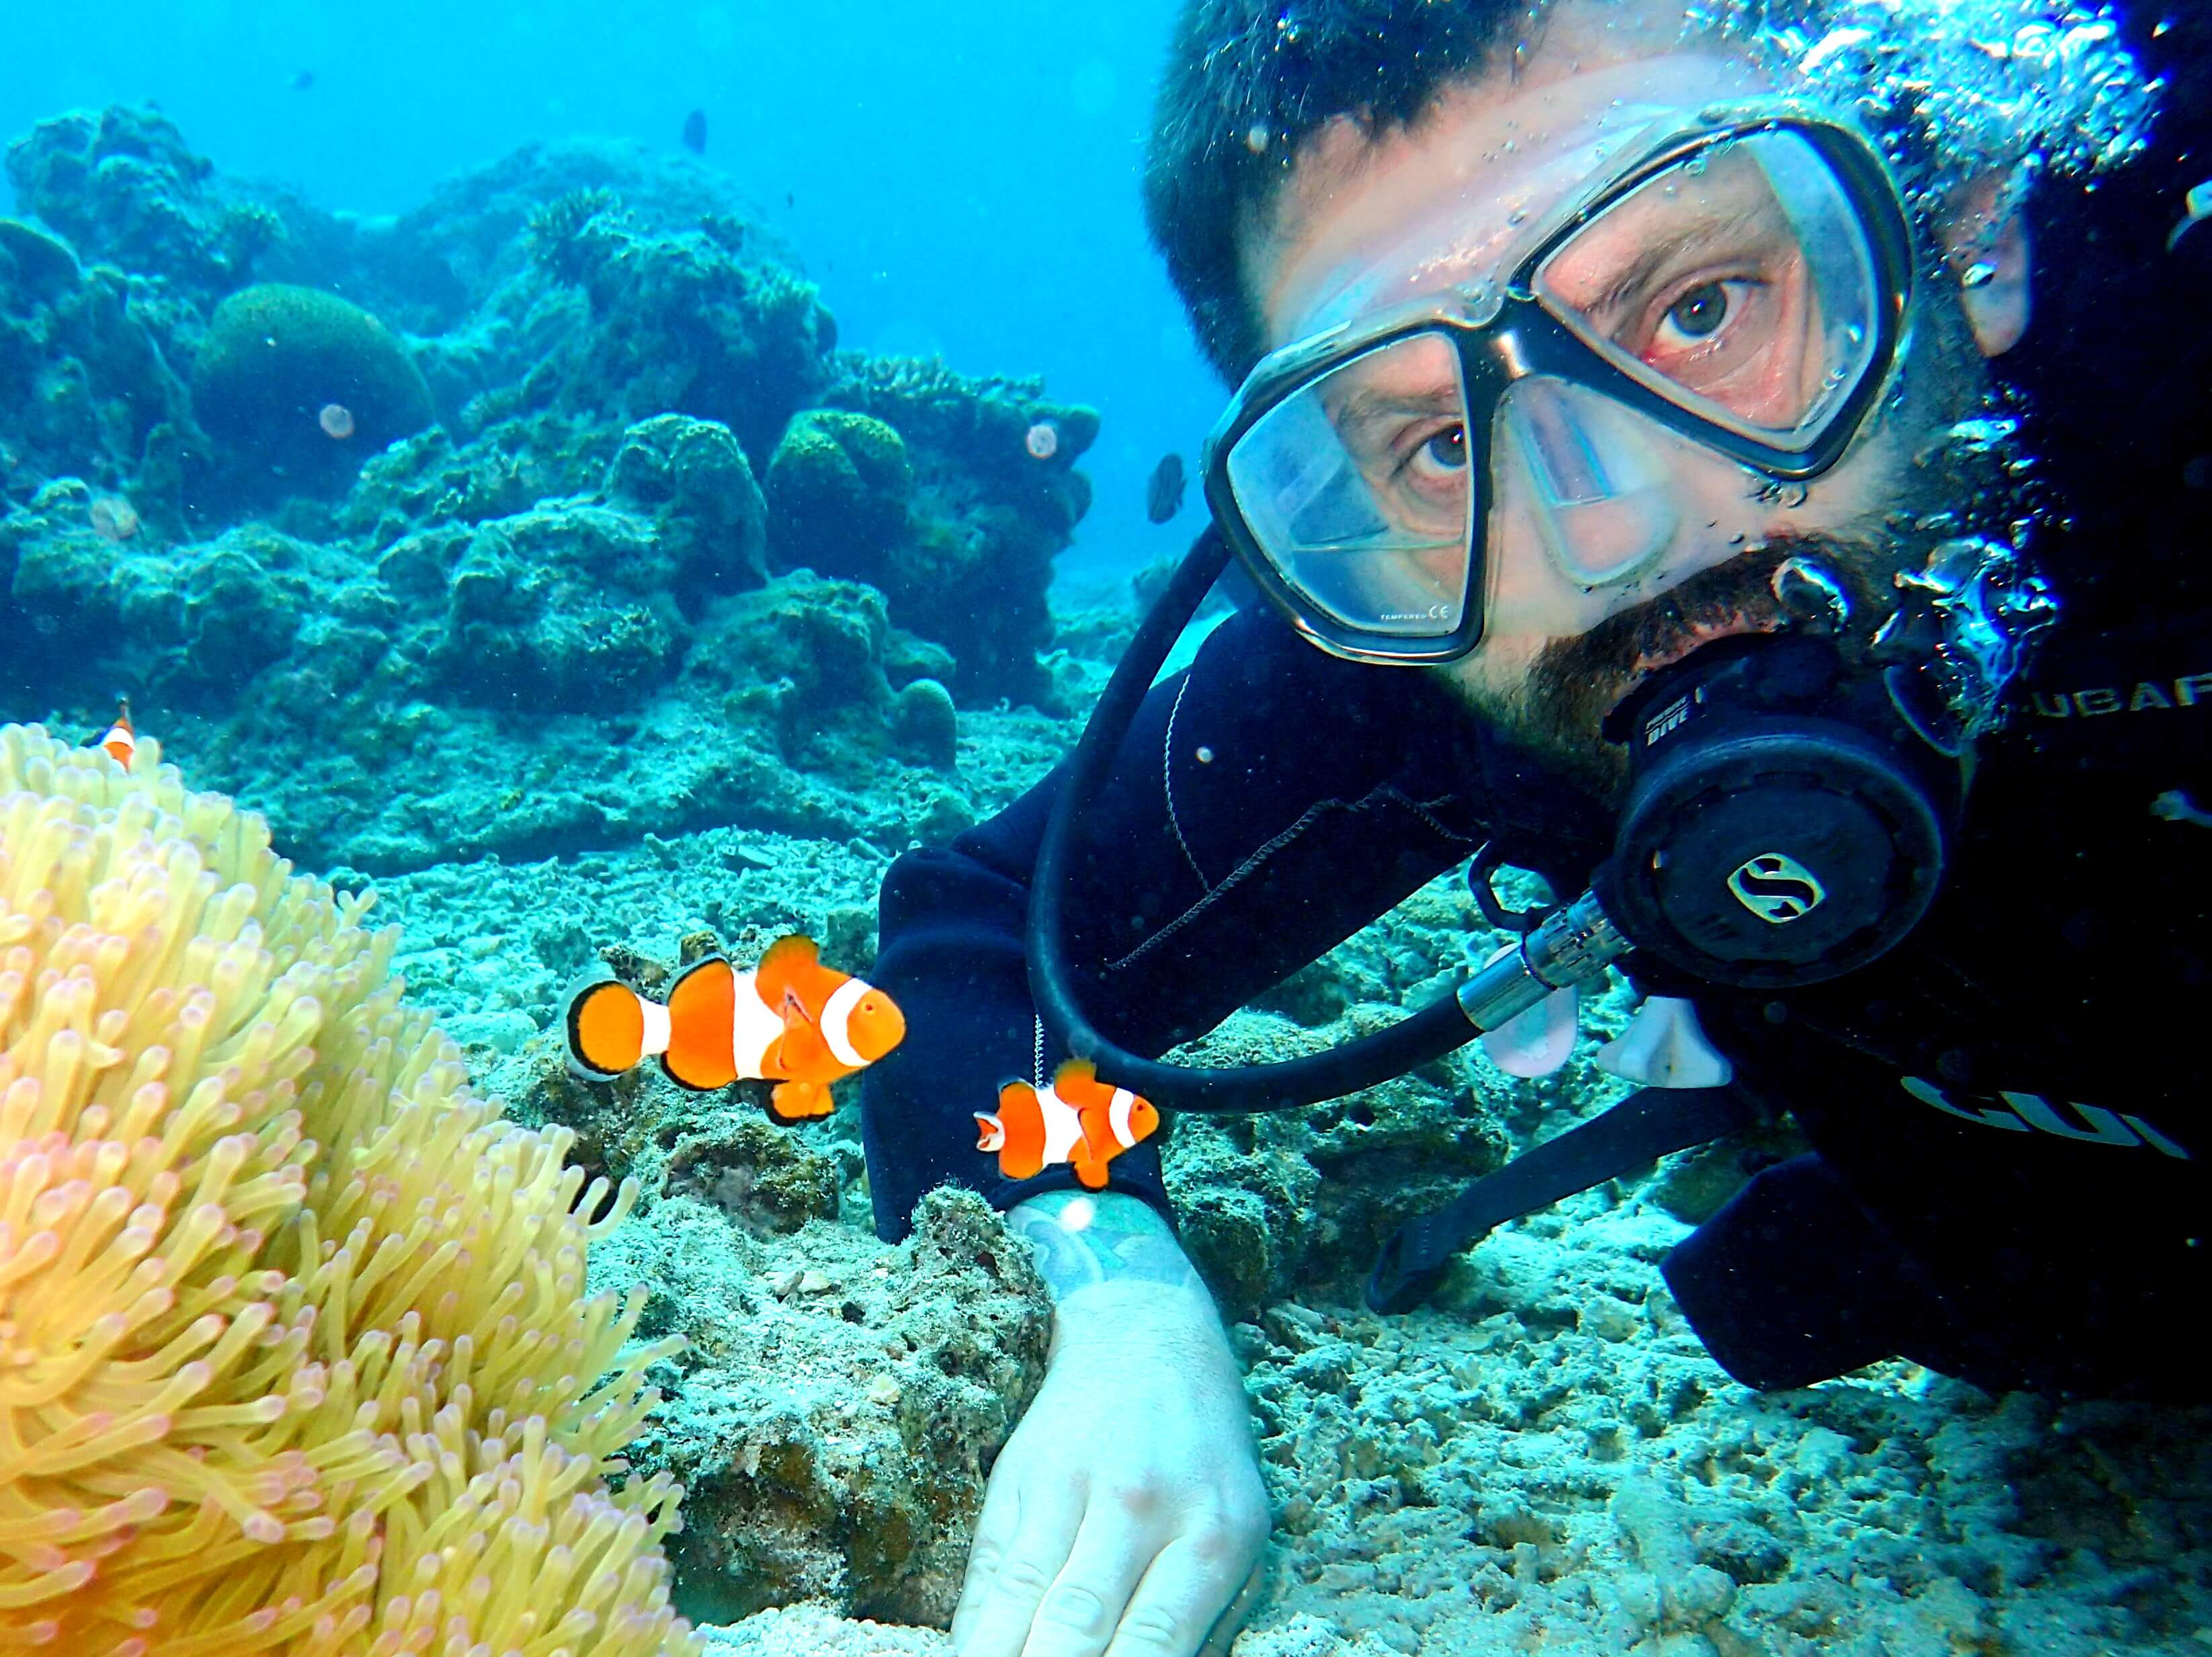 Ishigaki Island Diving and Snorkeling Day Tour in Okinawa